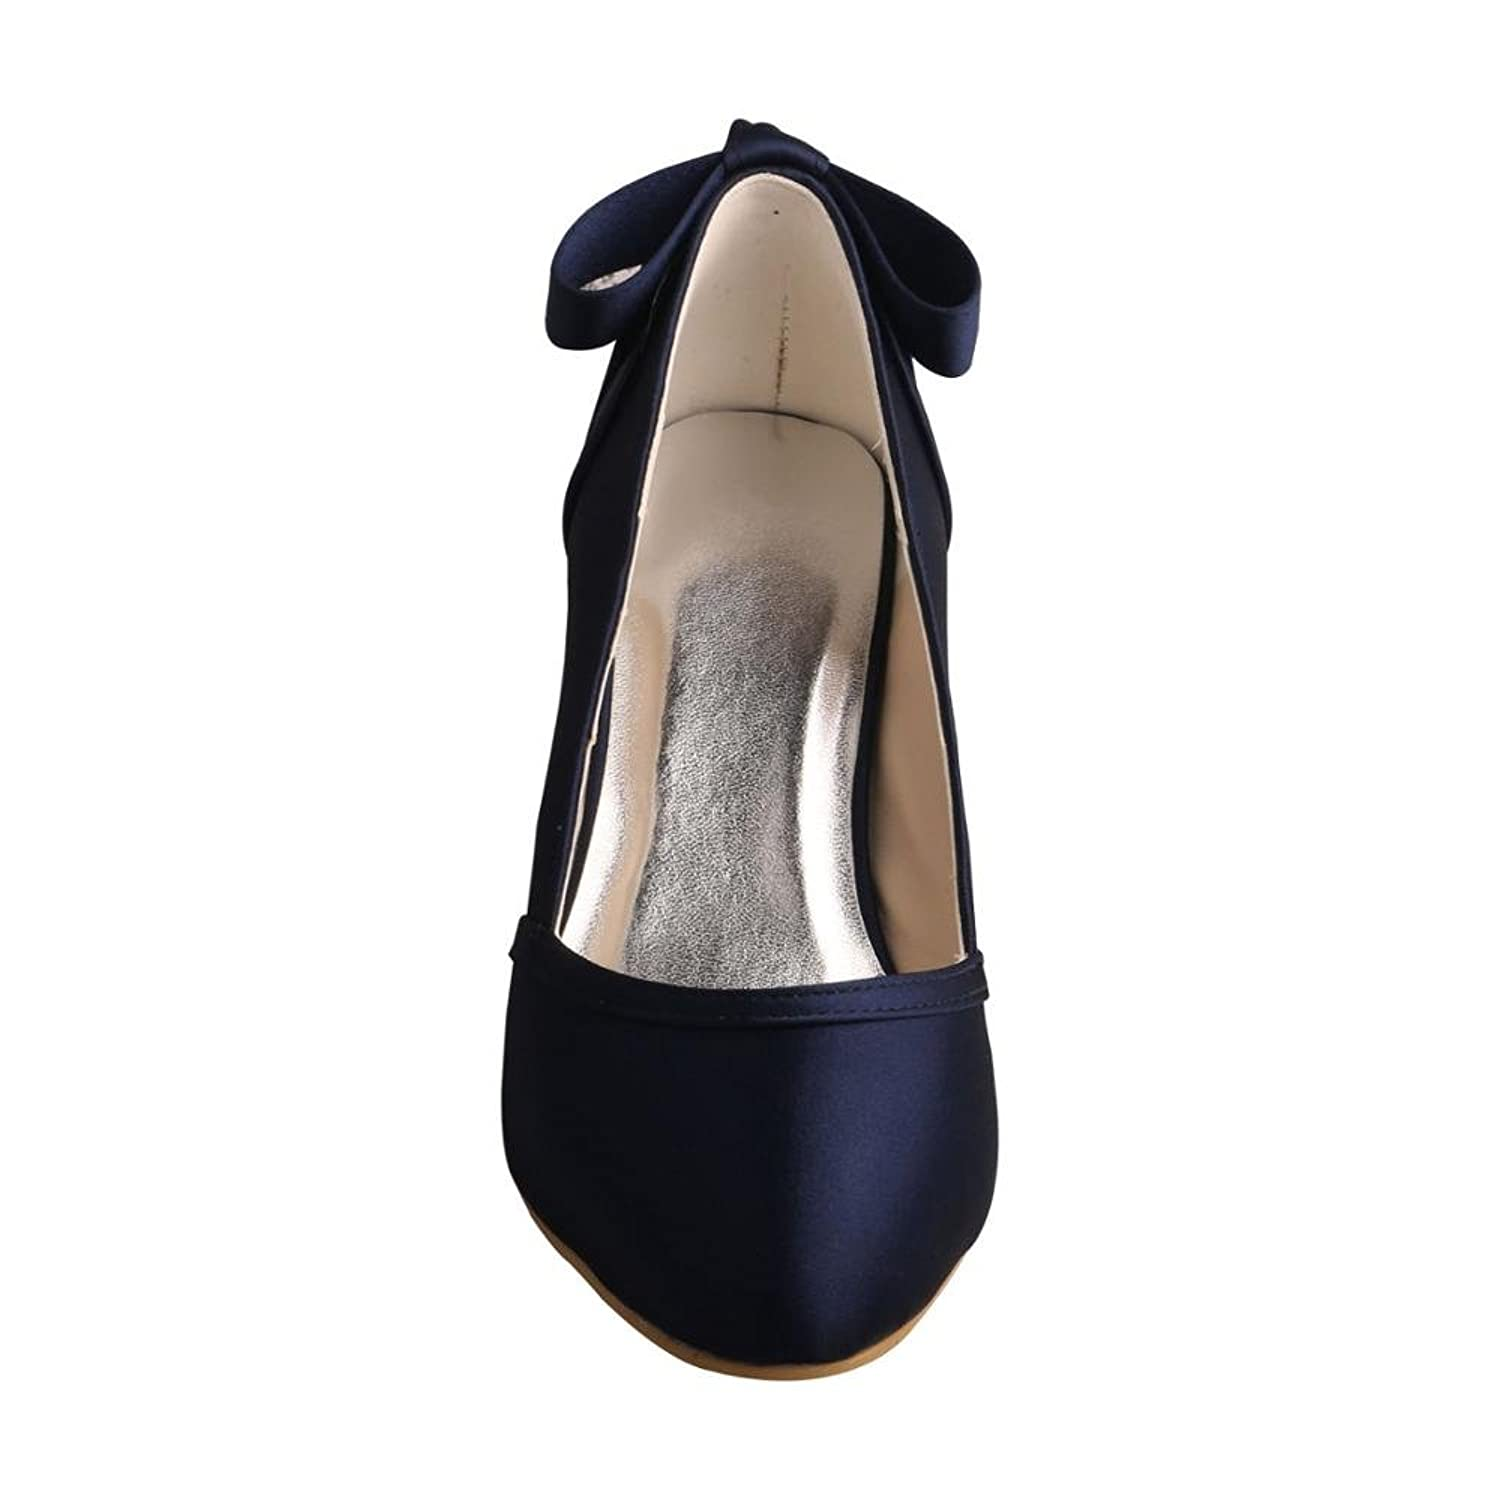 Wedopus MW460 Women Closed Toe Mid Heels Satin Bow Knot Navy Bridesmaid  Party Court Shoes: Amazon.co.uk: Shoes & Bags